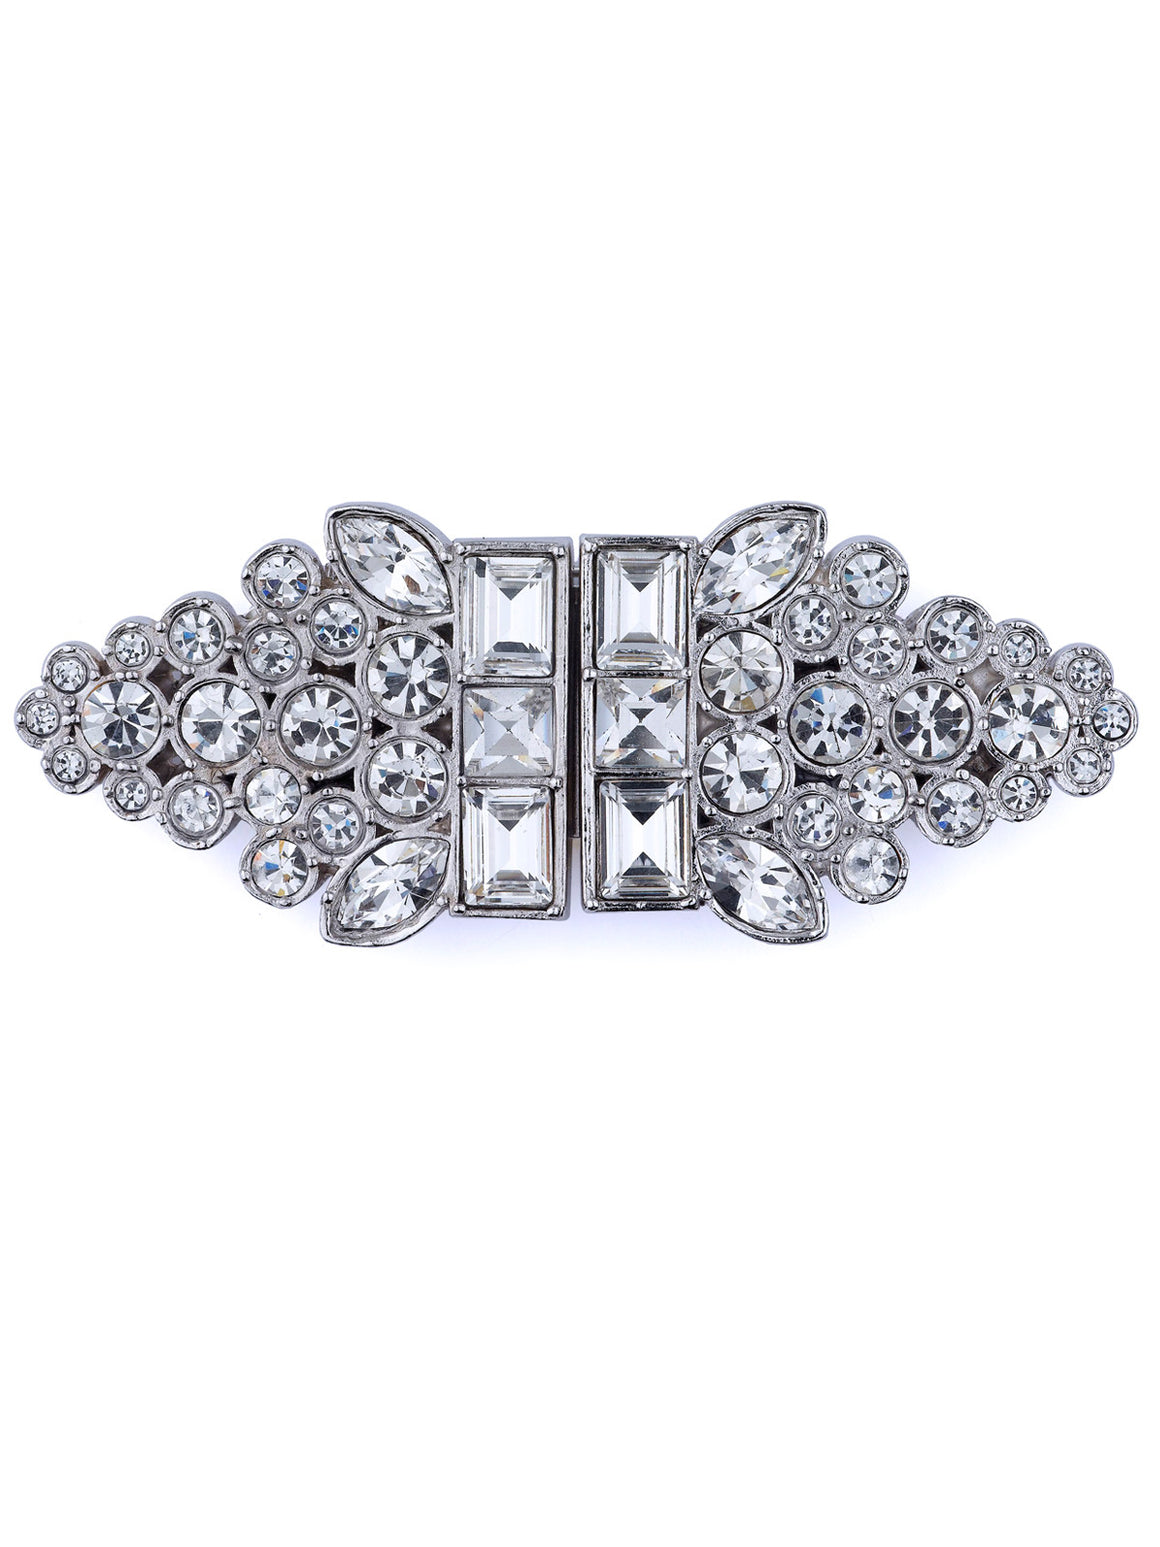 Bette Classic Double Clip Brooch - Jubilee Jones